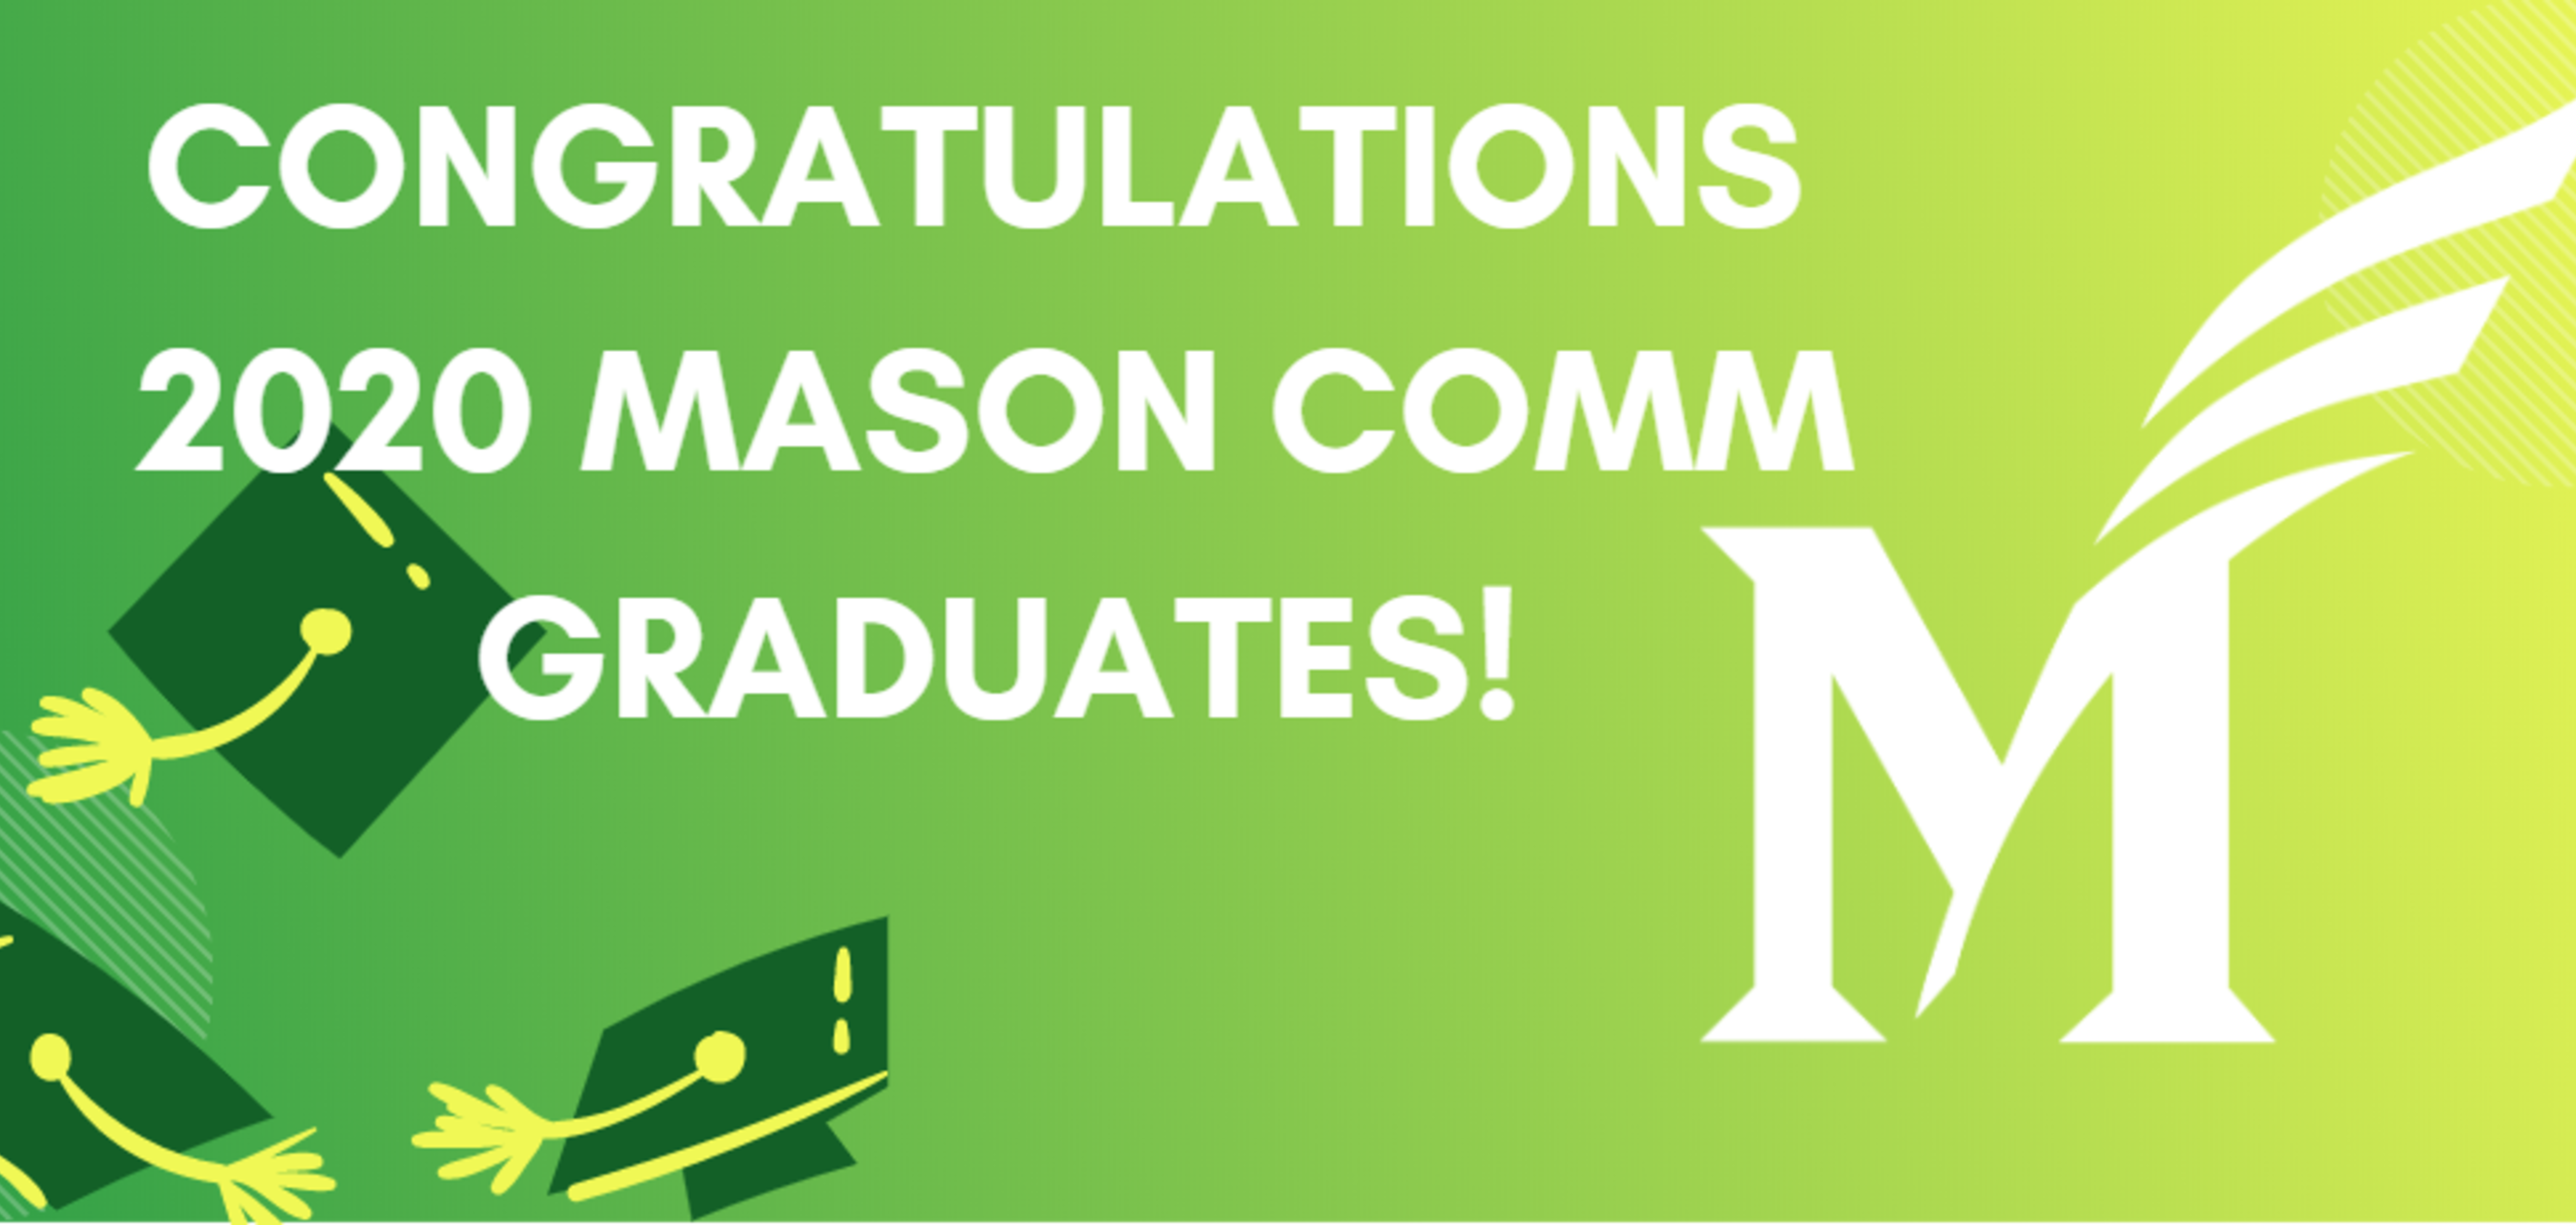 Congratulations to the Mason COMM Class of 2020!